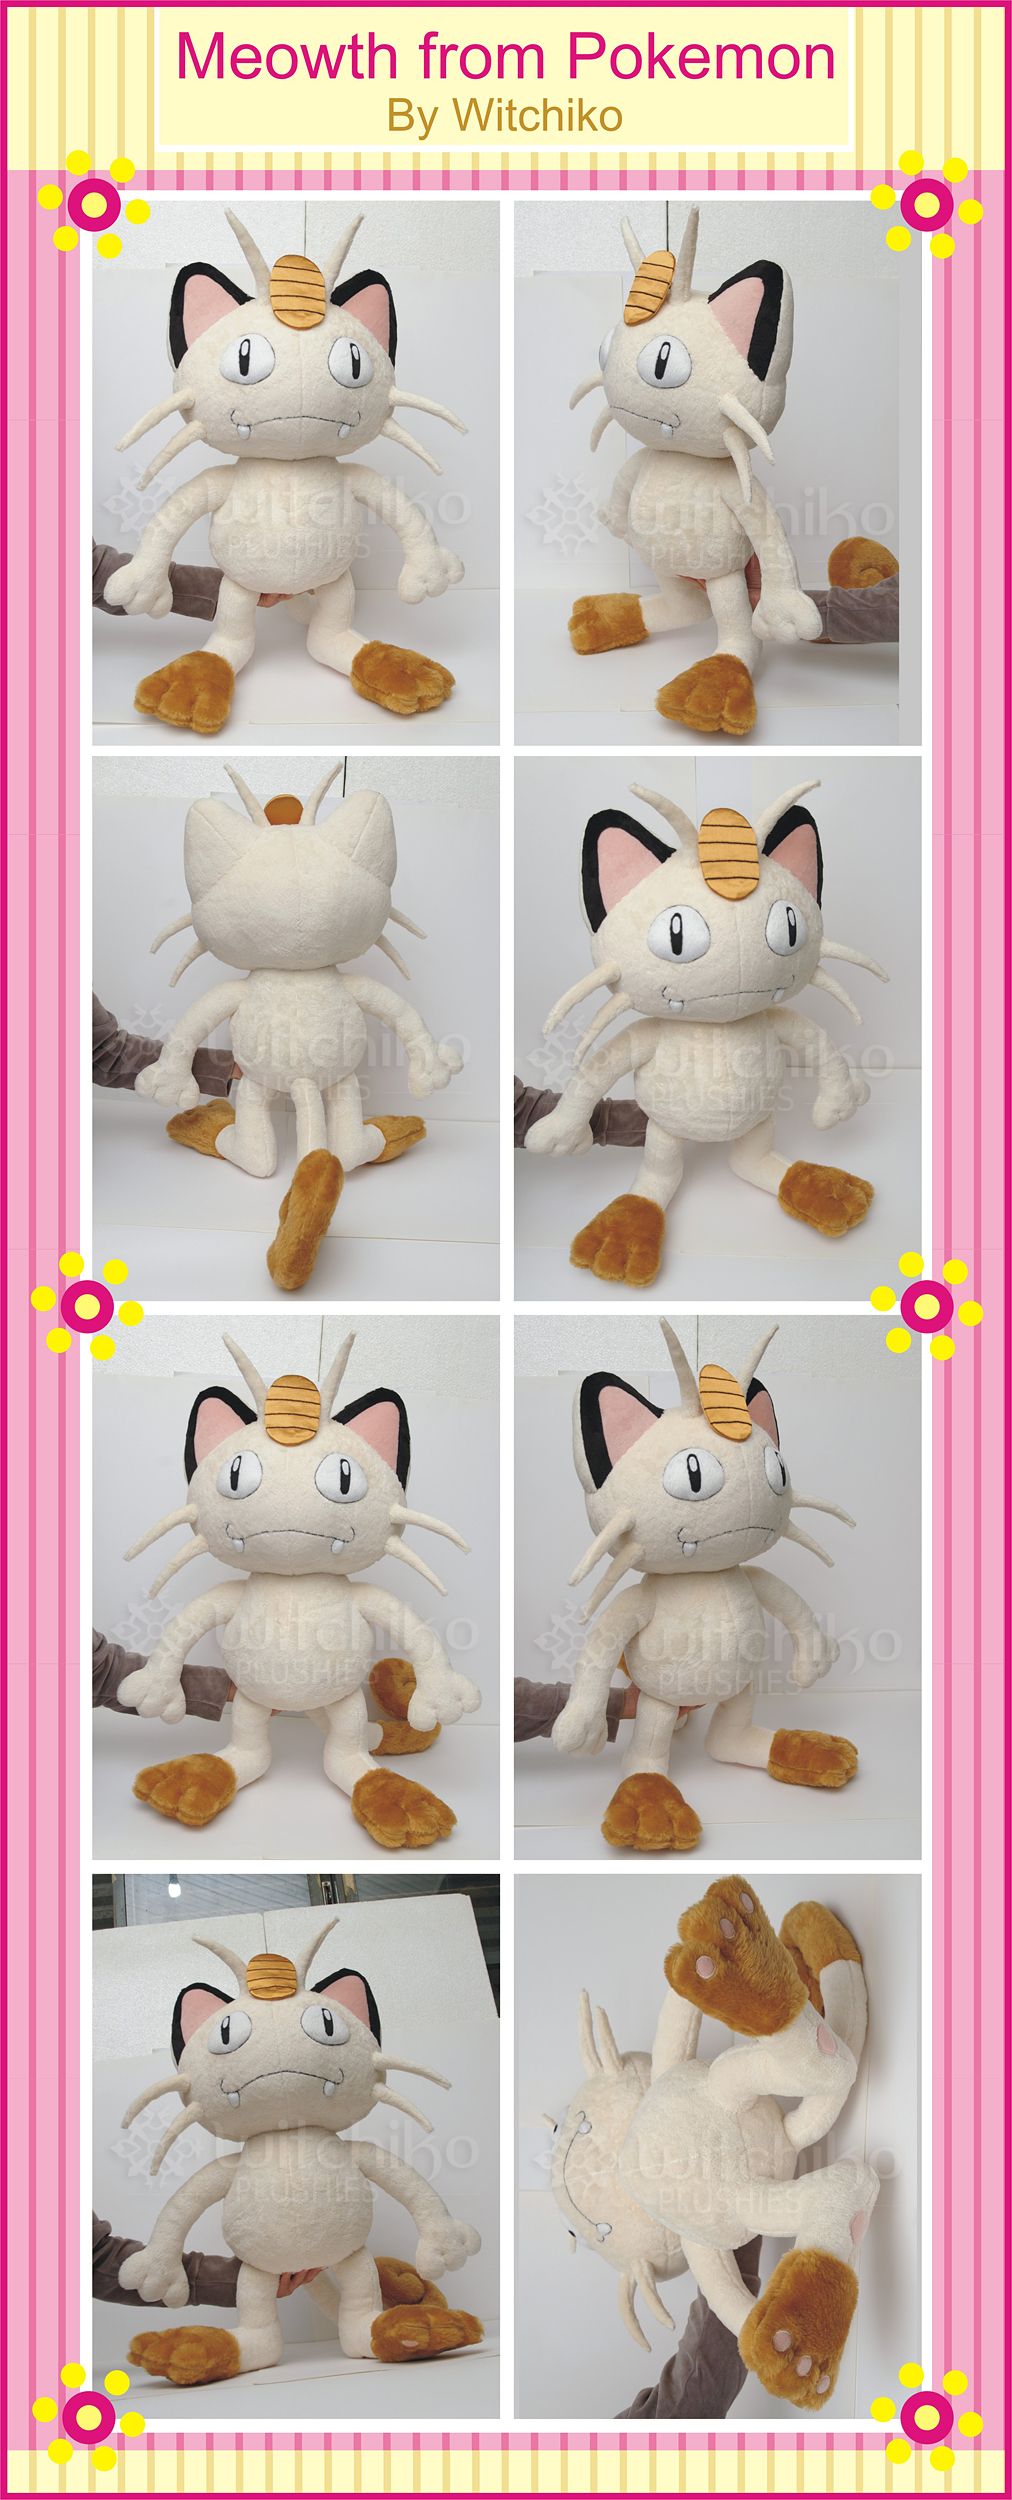 Meowth Plush by Witchiko